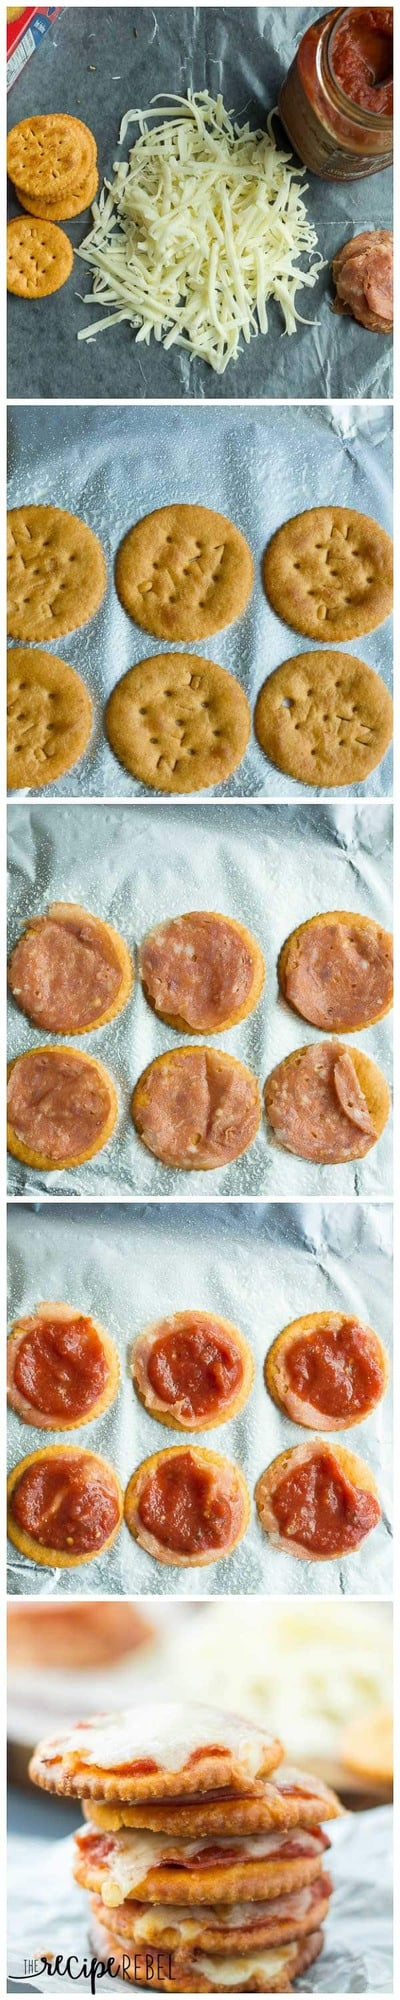 Pizza Crackers: The easiest 4-ingredient snack, appetizer or lunch for the kids! Easily change them to your tastes. Less than 10 minutes start to finish! www.thereciperebel.com